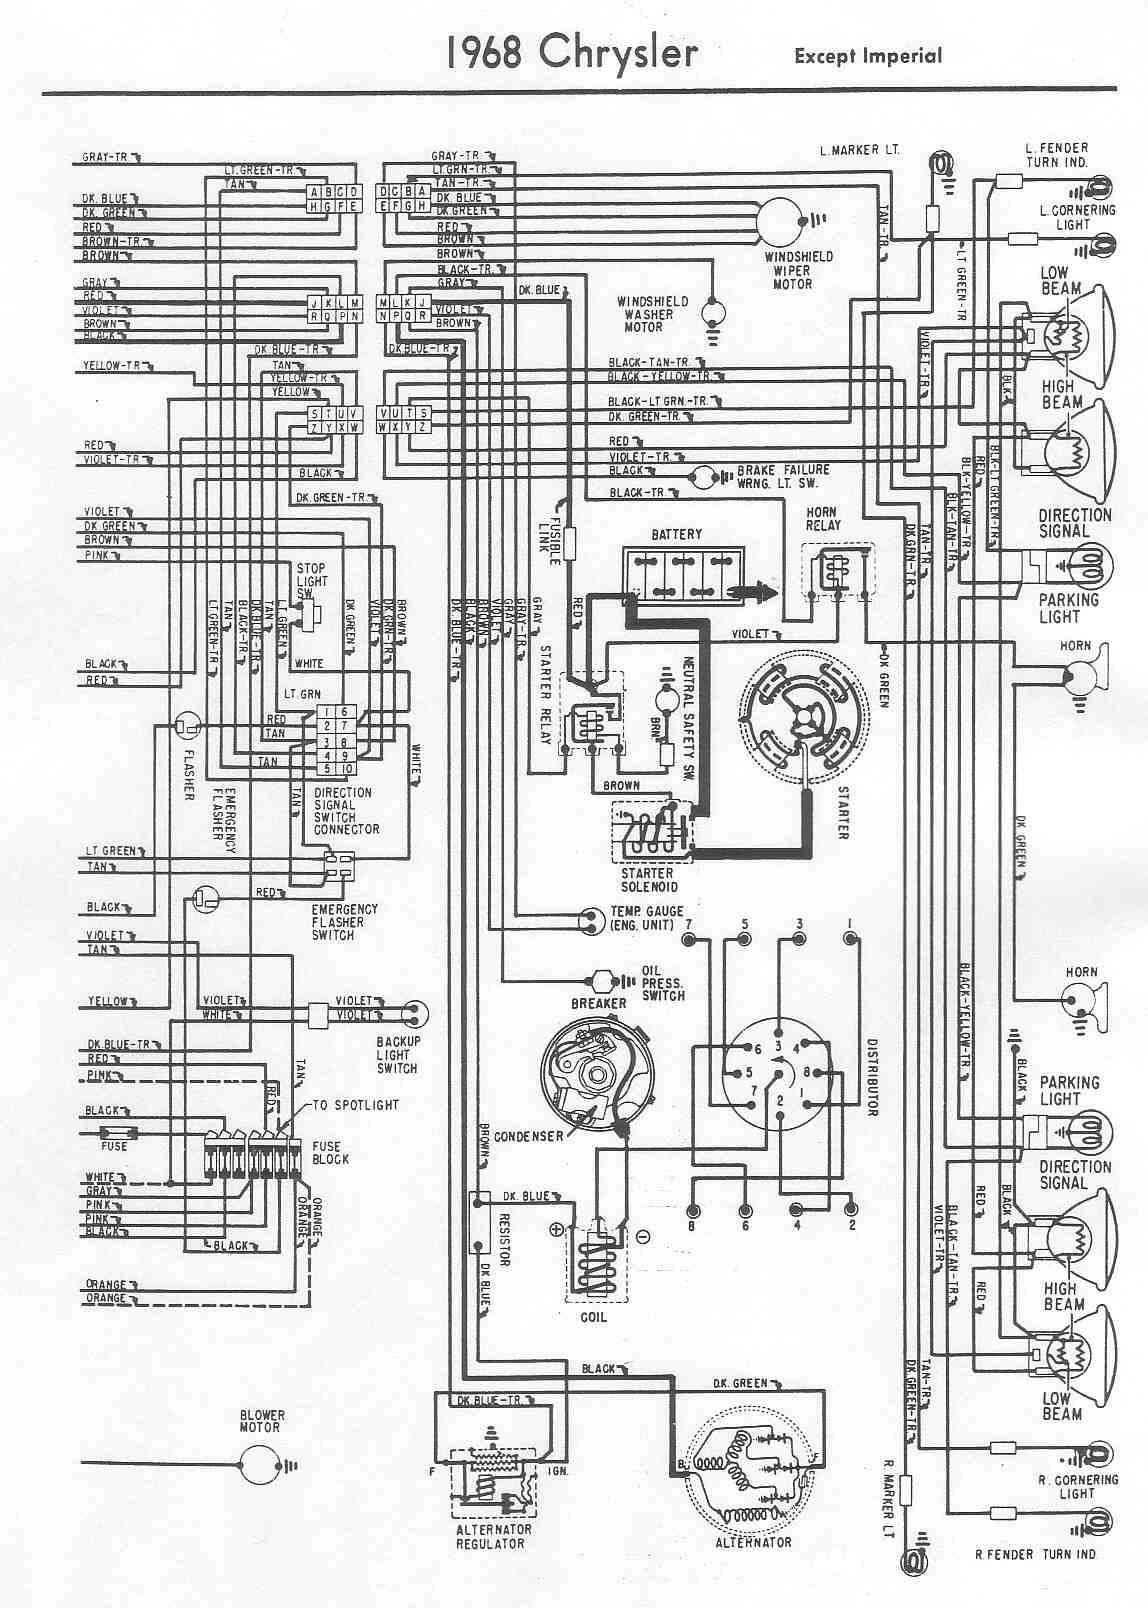 1966 newport wiring diagram online schematic diagram u2022 rh holyoak co 68 Corvette Wiring Diagram 68 Firebird Wiring Diagram